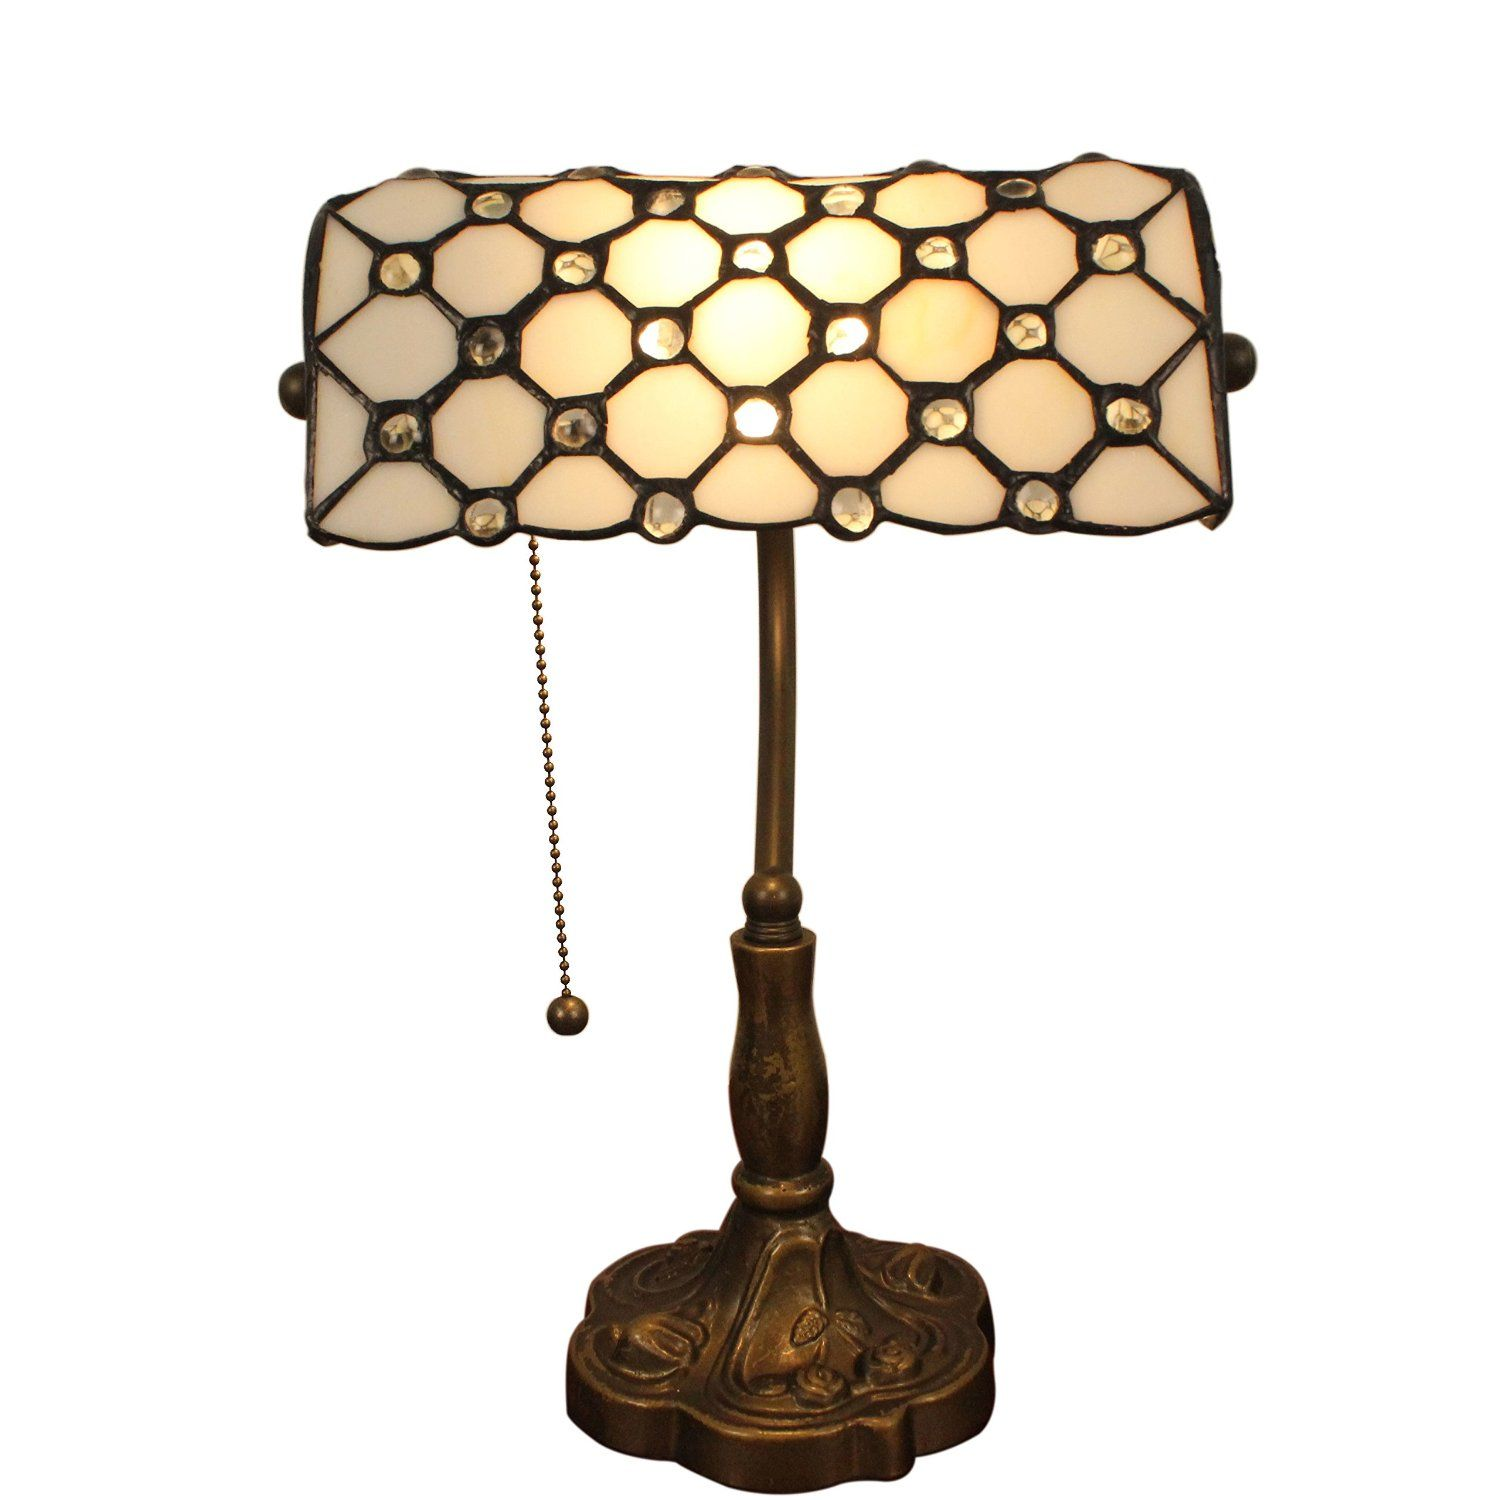 Table lamp vintage style - Gweat Tiffany Retro Style Jeweled Banker Table Lamp 10 Inch